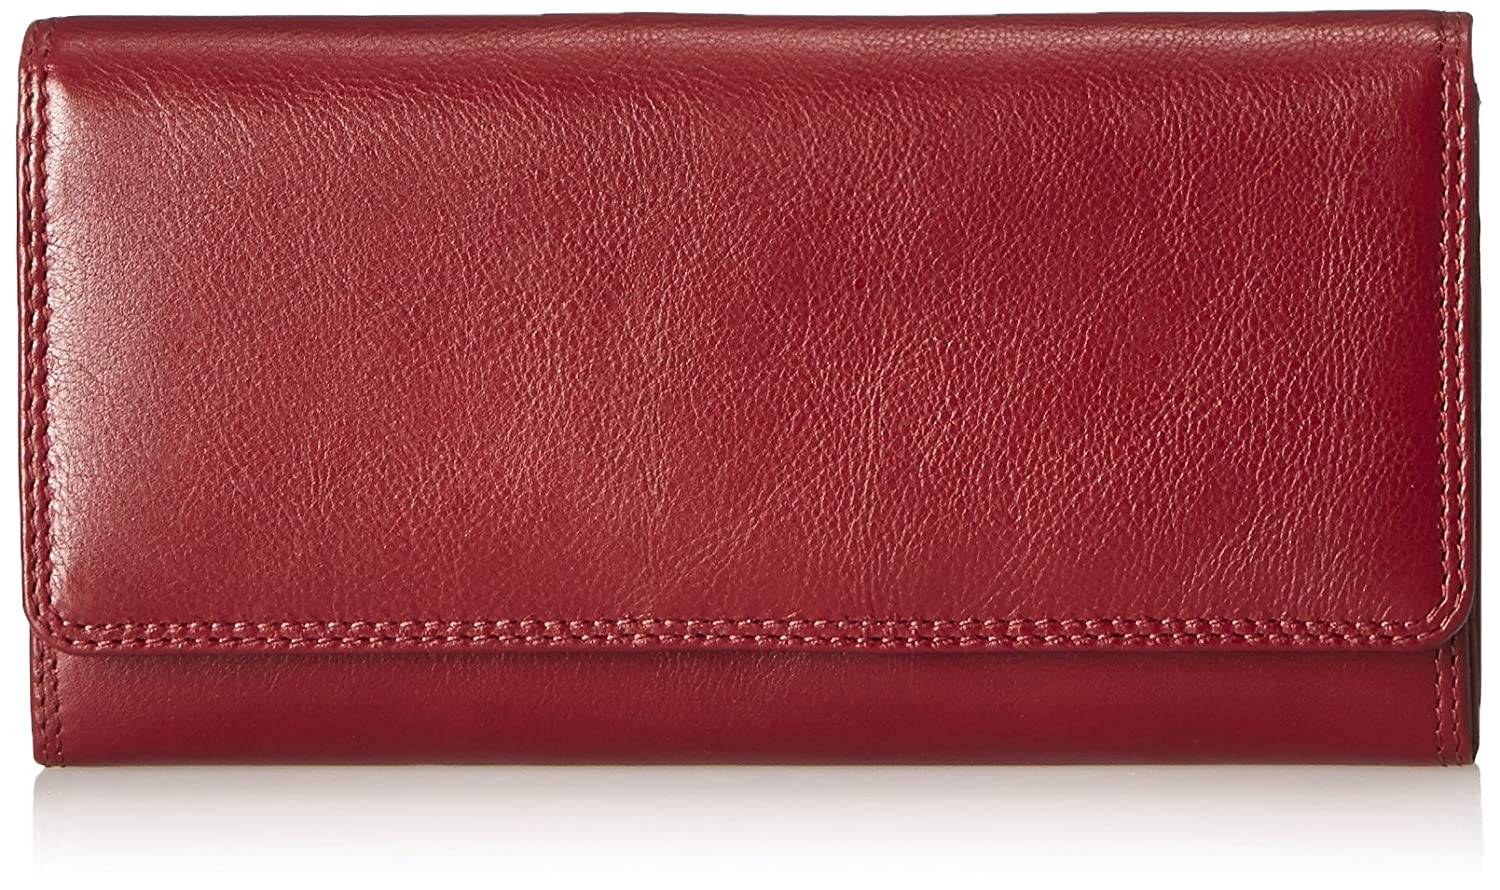 Visconti Heritage 35 Soft Leather Large Ladies Purse Wallet (Red)